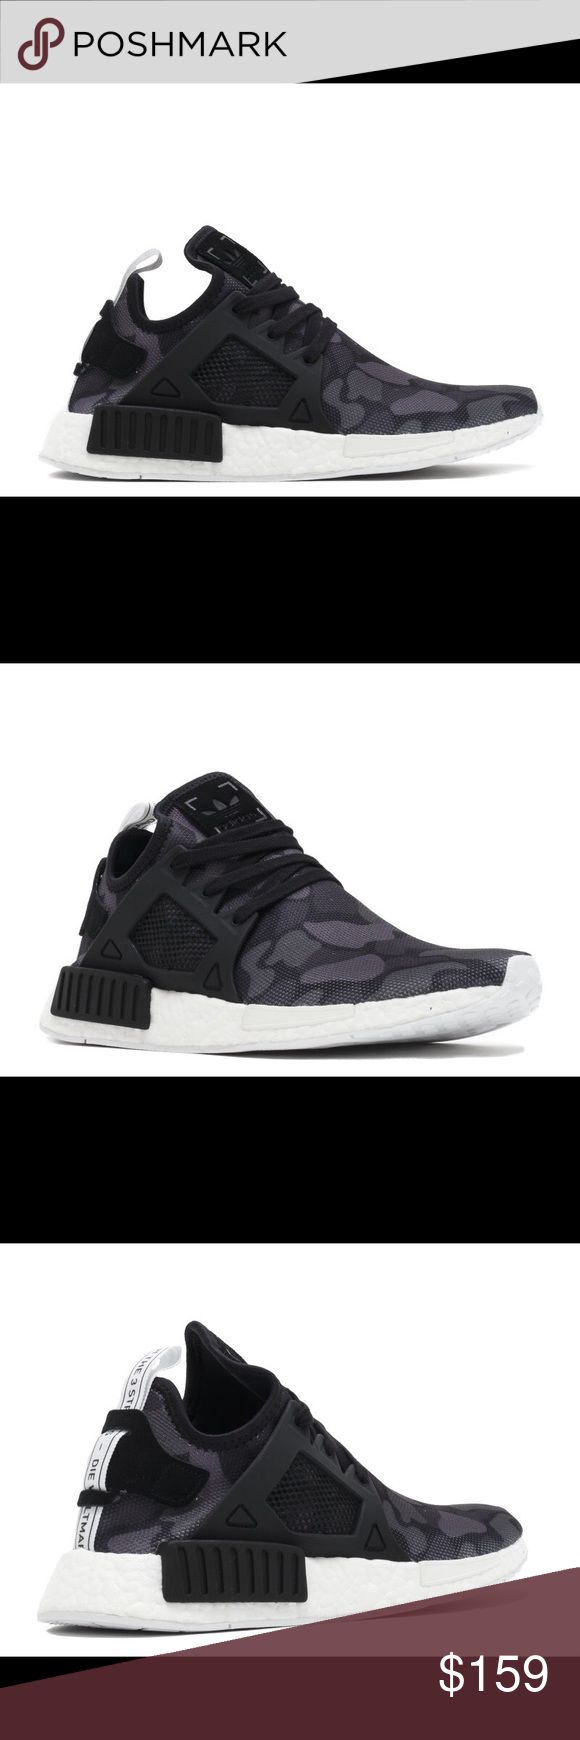 ADIDAS NMD XR1 Black Duck Camo DEADSTOCK size 8 men's. Adidas Shoes Sneakers